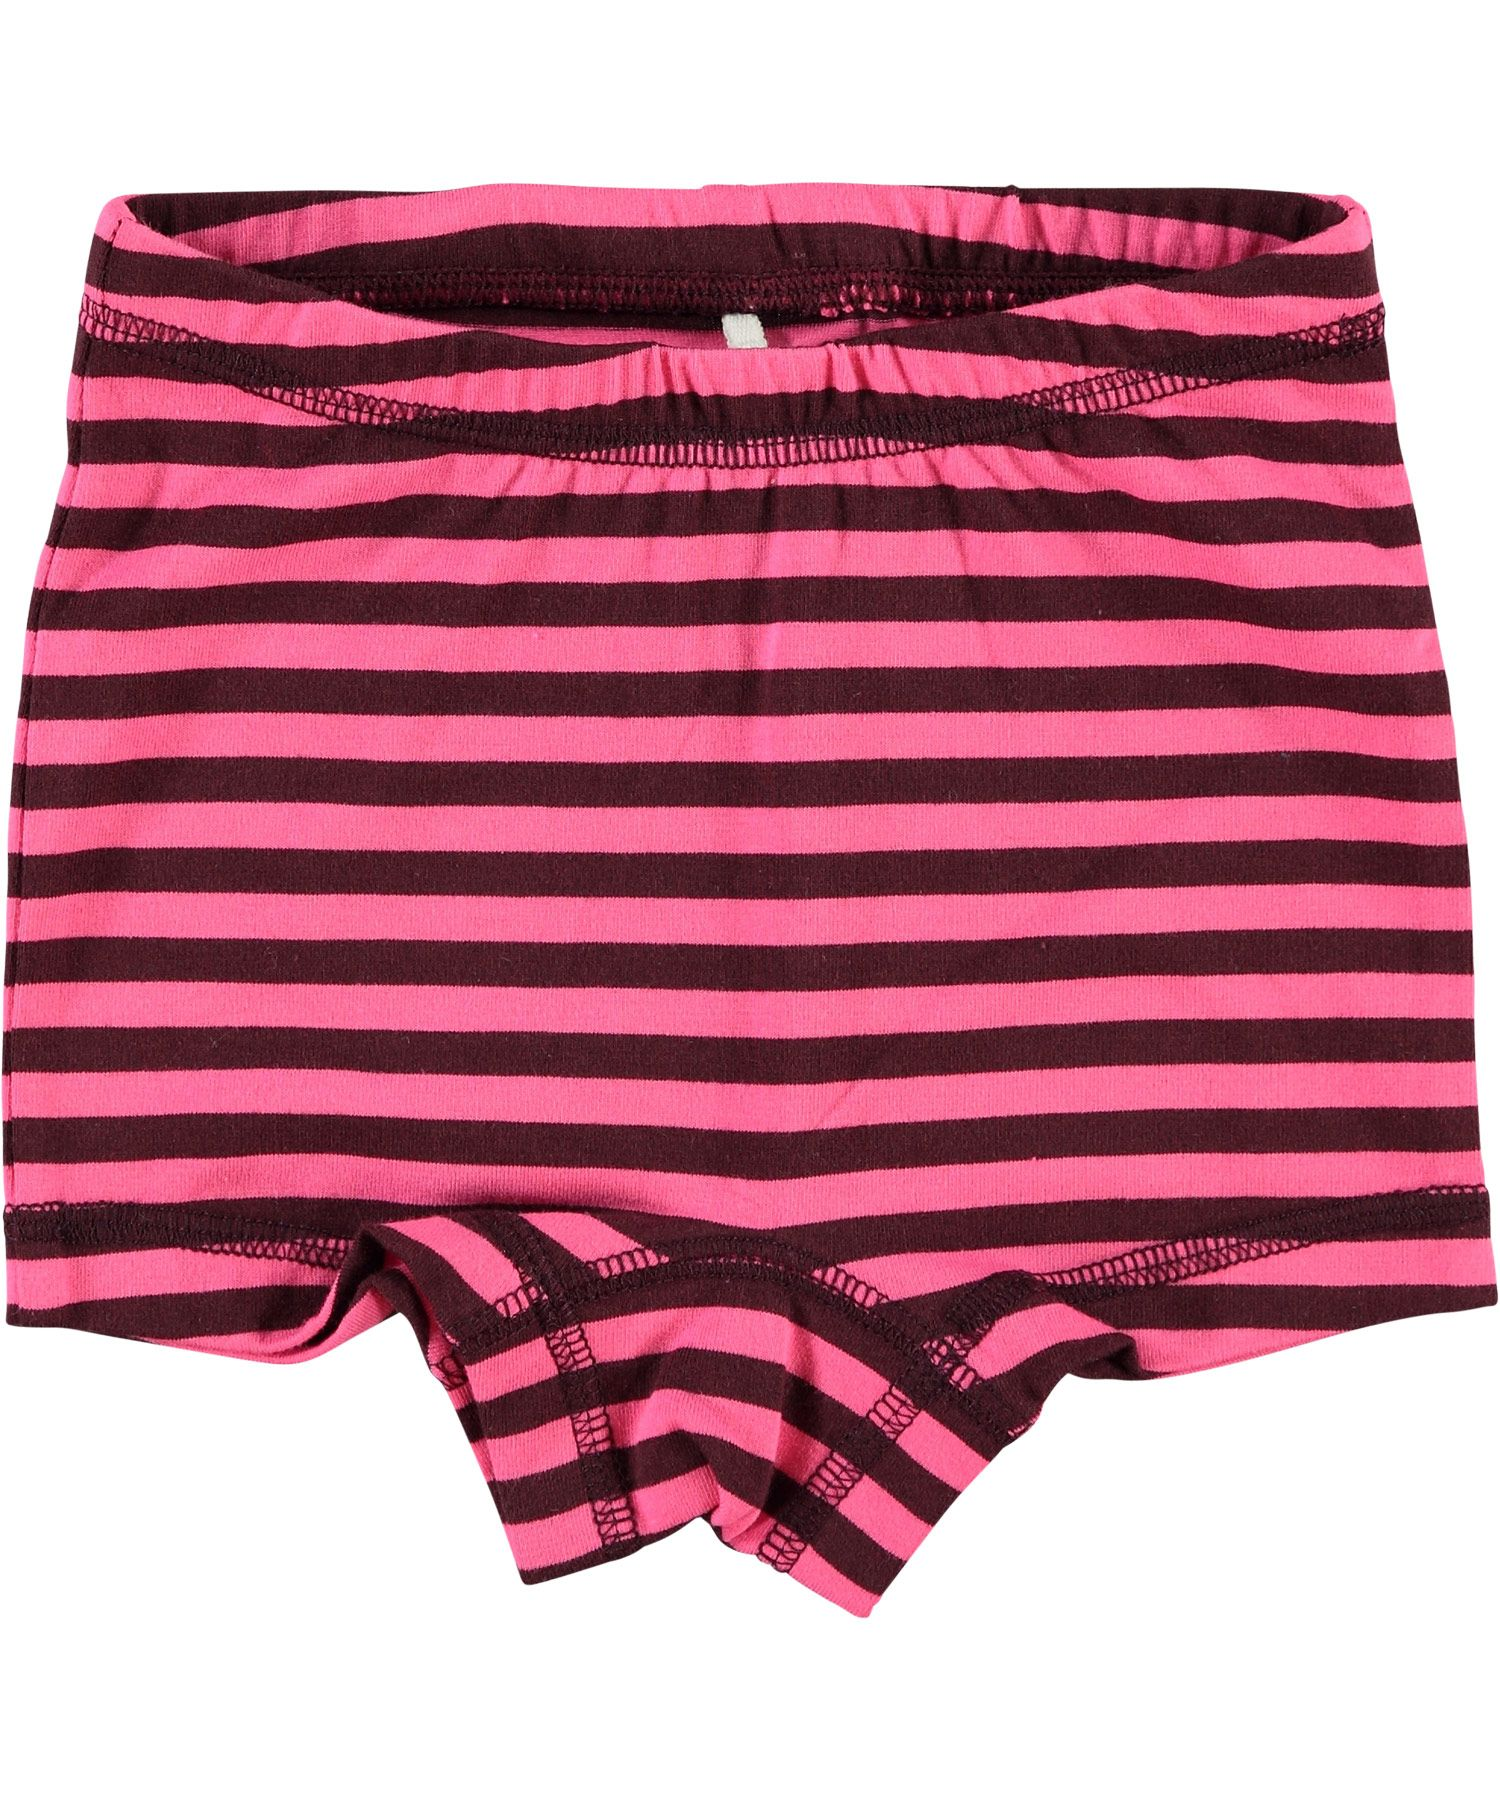 Name it plum striped hipster shorts for junior girls. name-it.en.emilea.be